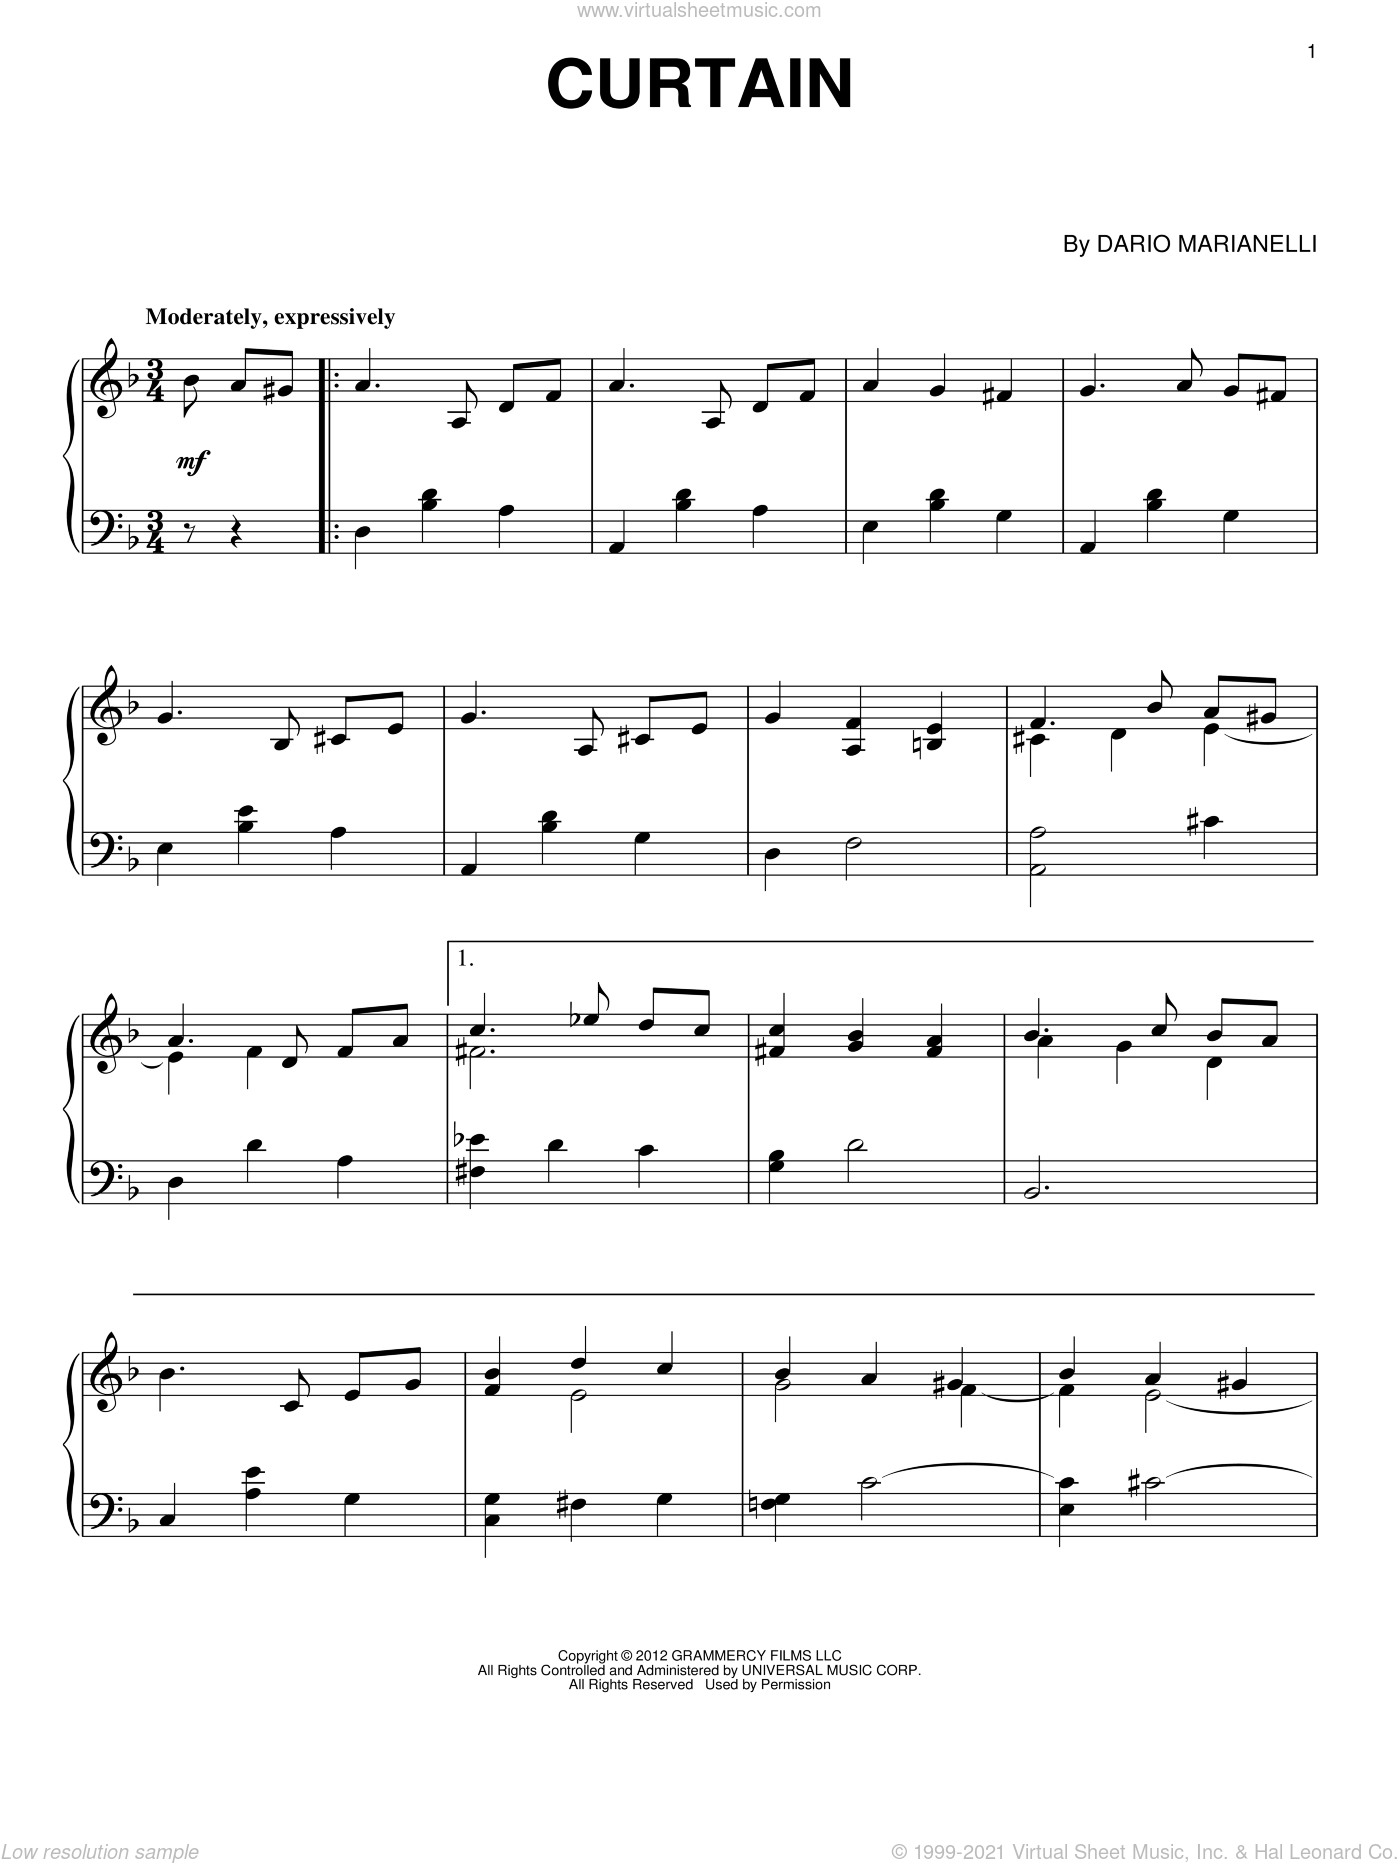 Curtain sheet music for piano solo by Dario Marianelli